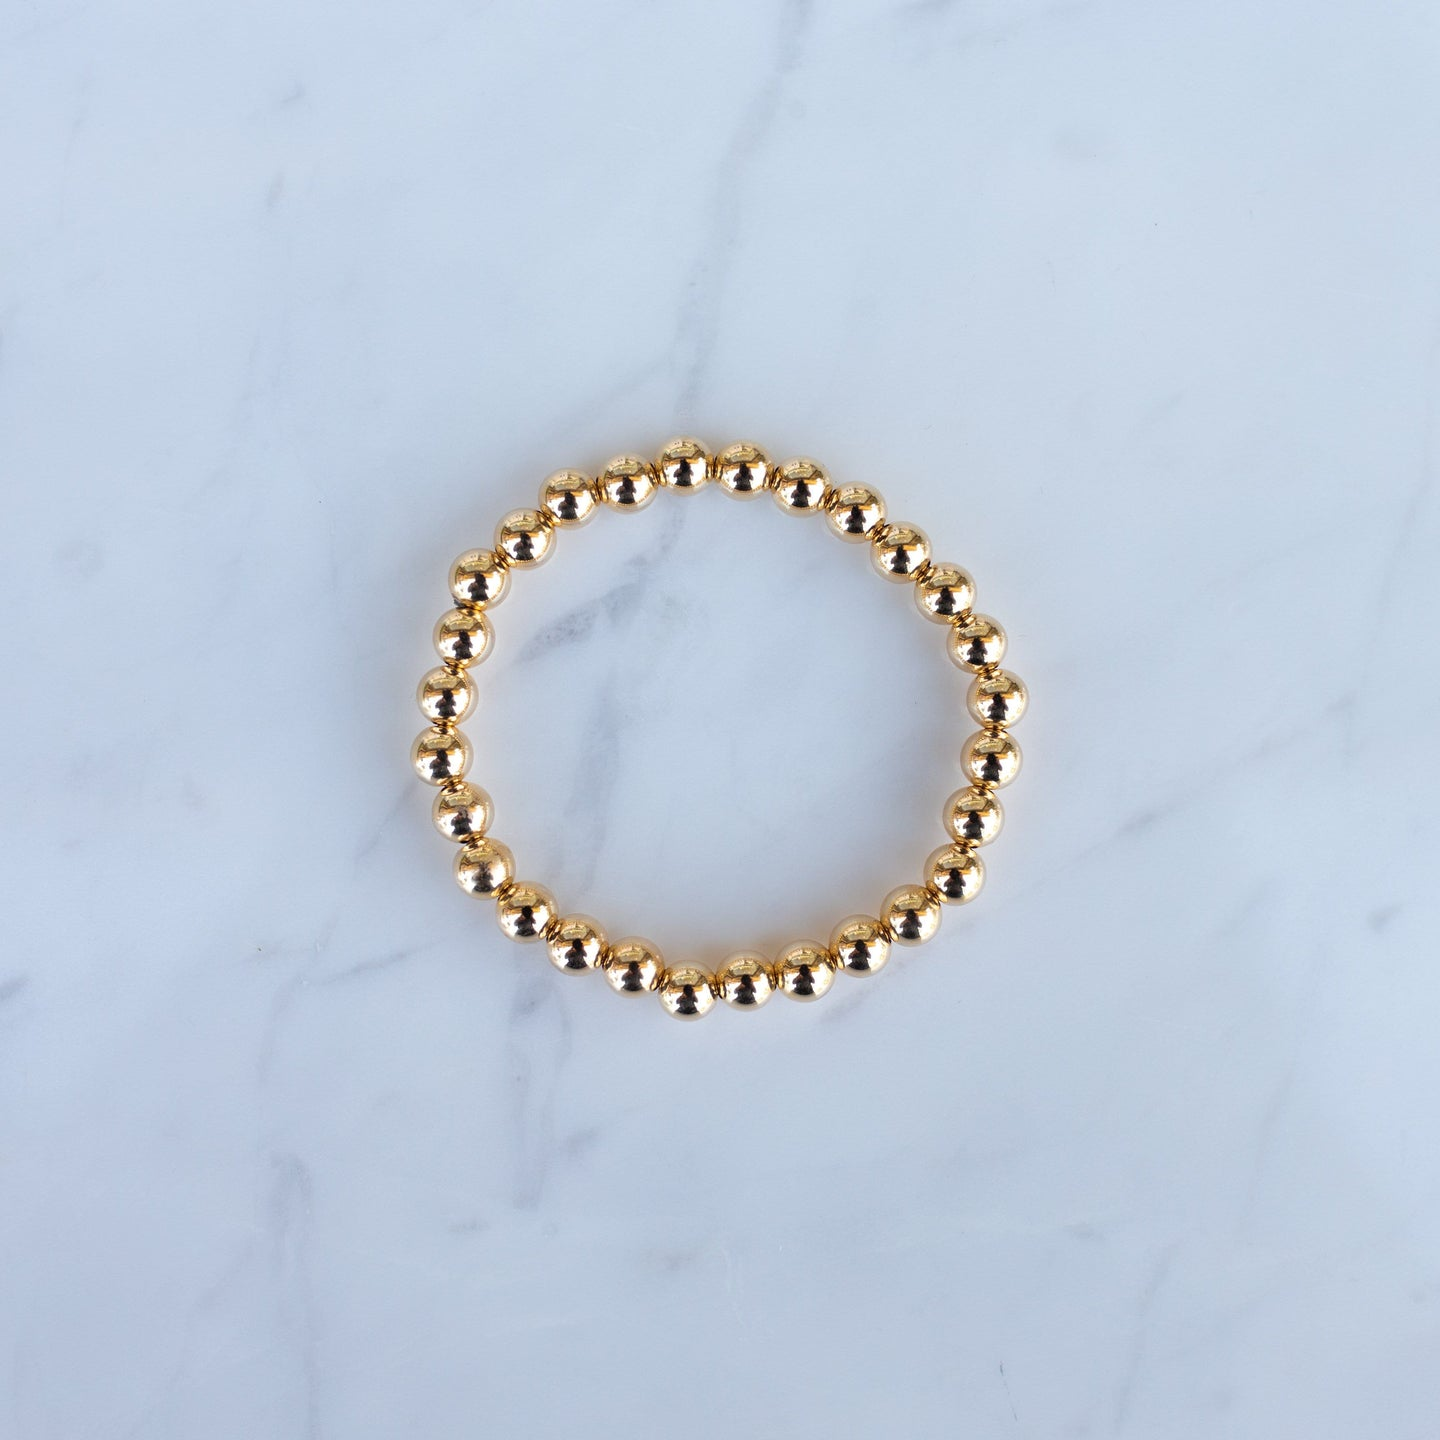 5mm Yellow Gold Filled Beaded Bracelet